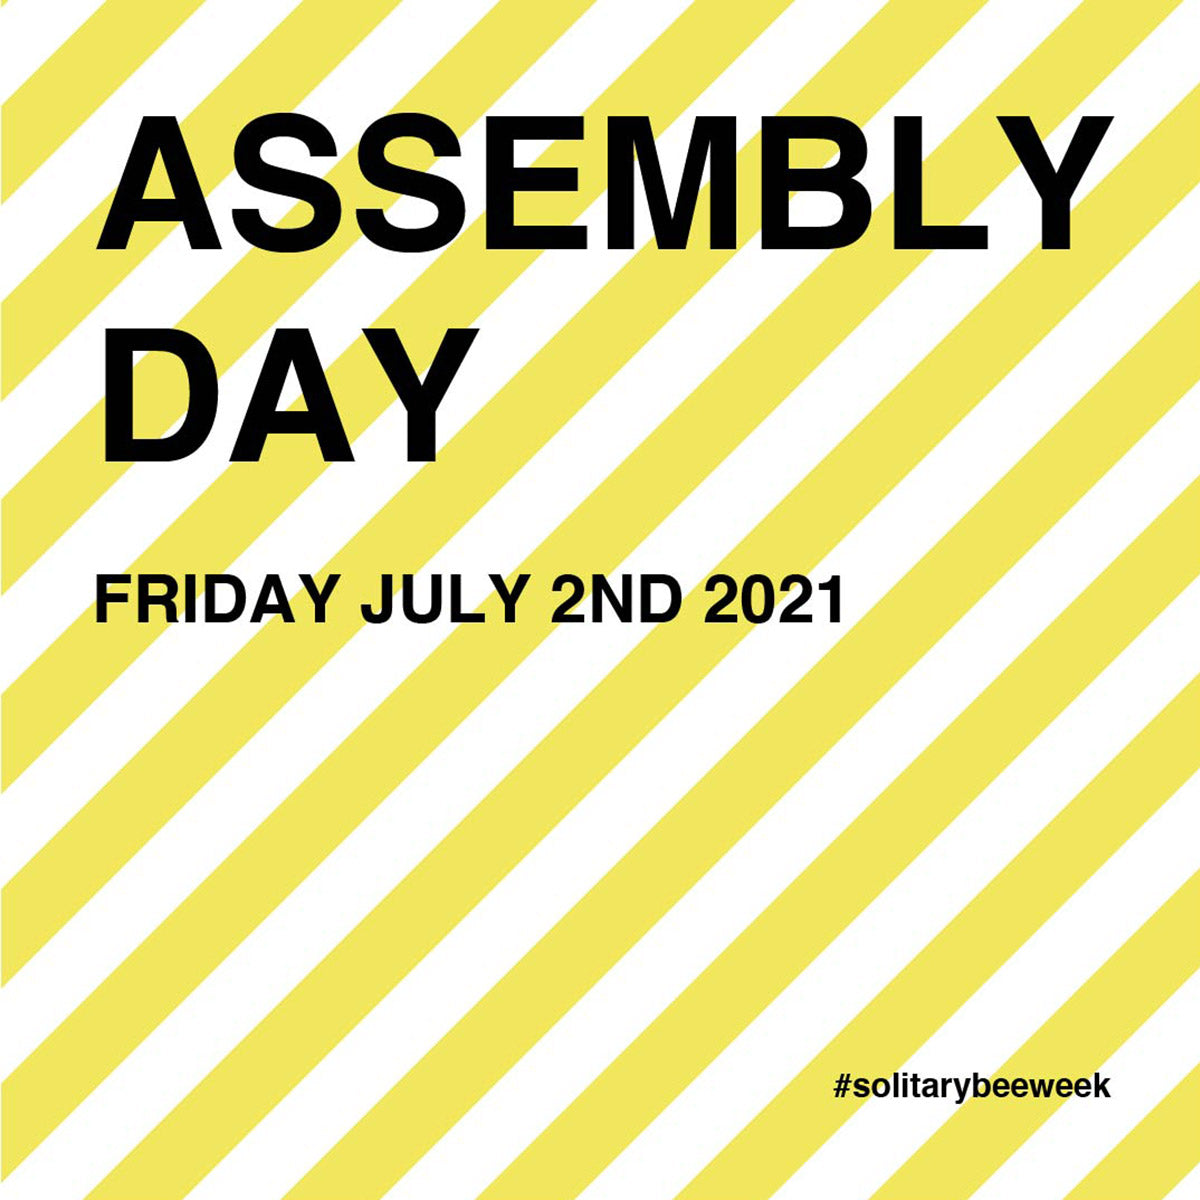 Graphic with yellow and white stripes that says assembly day 2021 as part of solitary bee week 2021